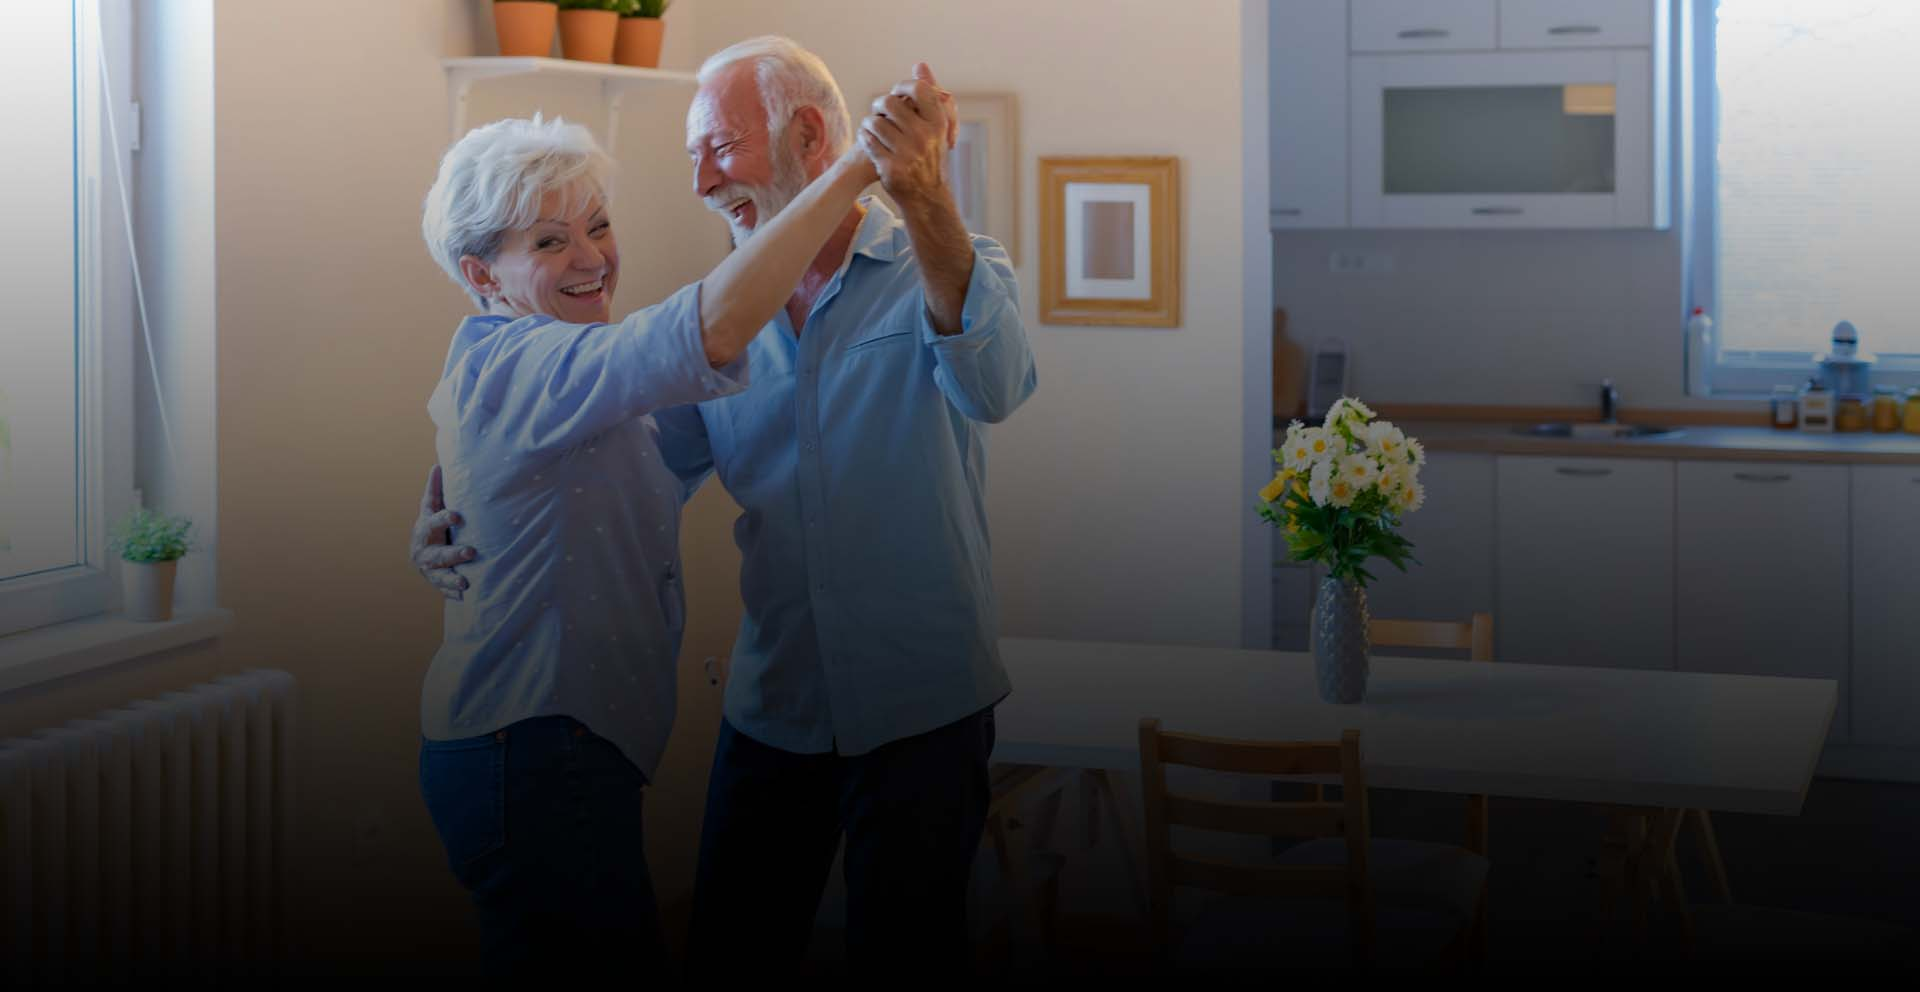 What Is Dance Therapy And How Is It Beneficial For Seniors